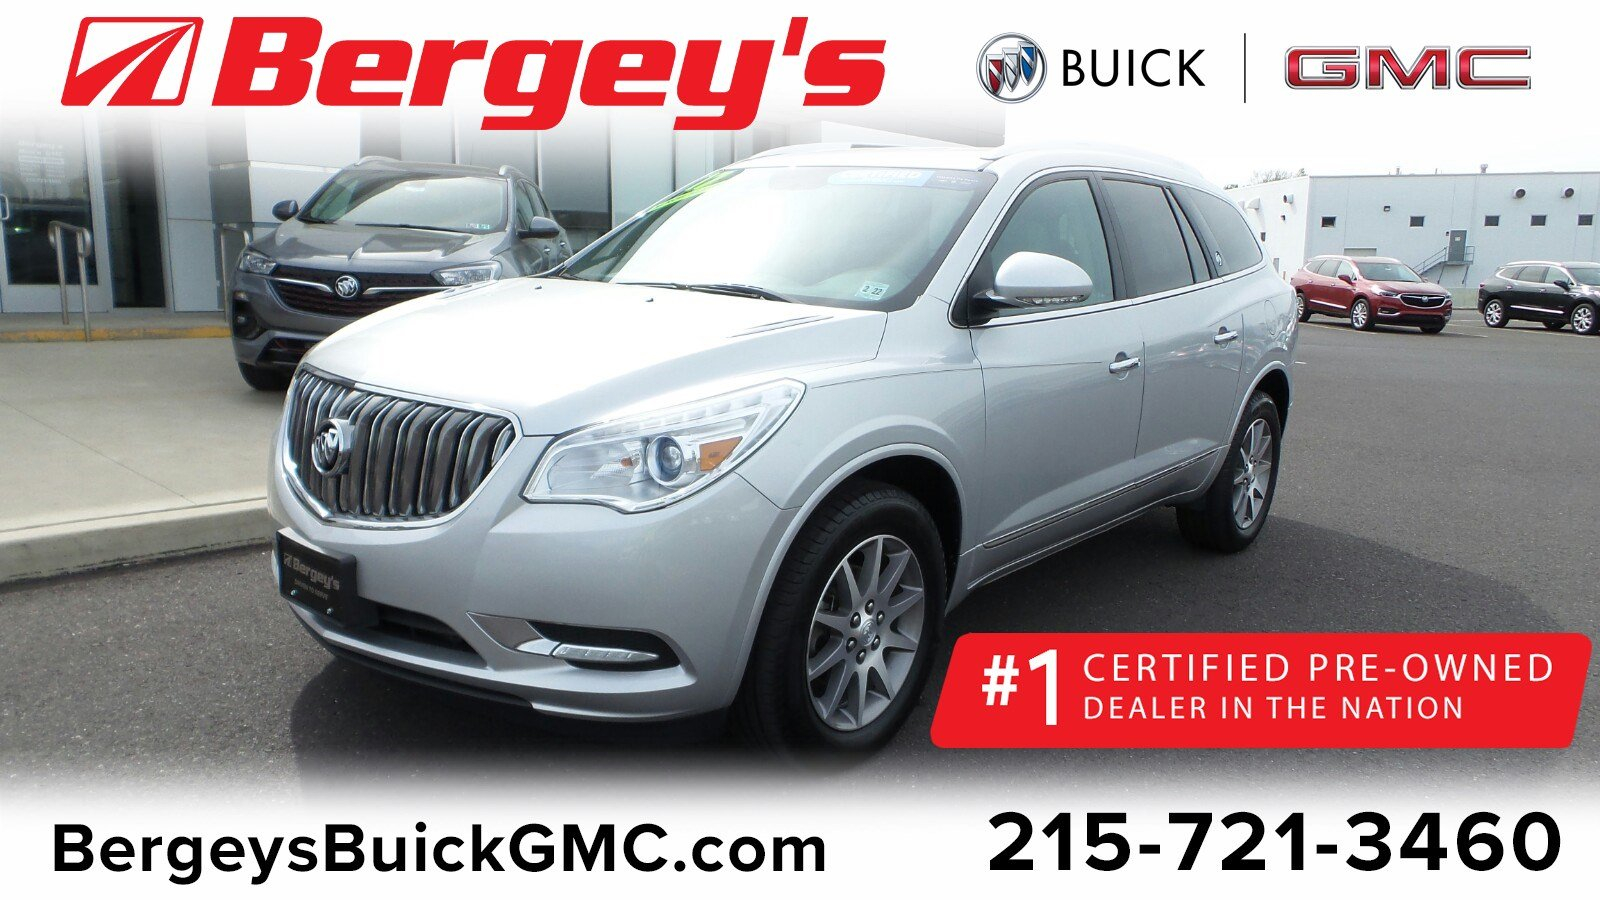 Used 2017 Buick Enclave For Sale | Souderton Pa 2022 Buick Enclave Manual, Maintenance Schedule, Mileage